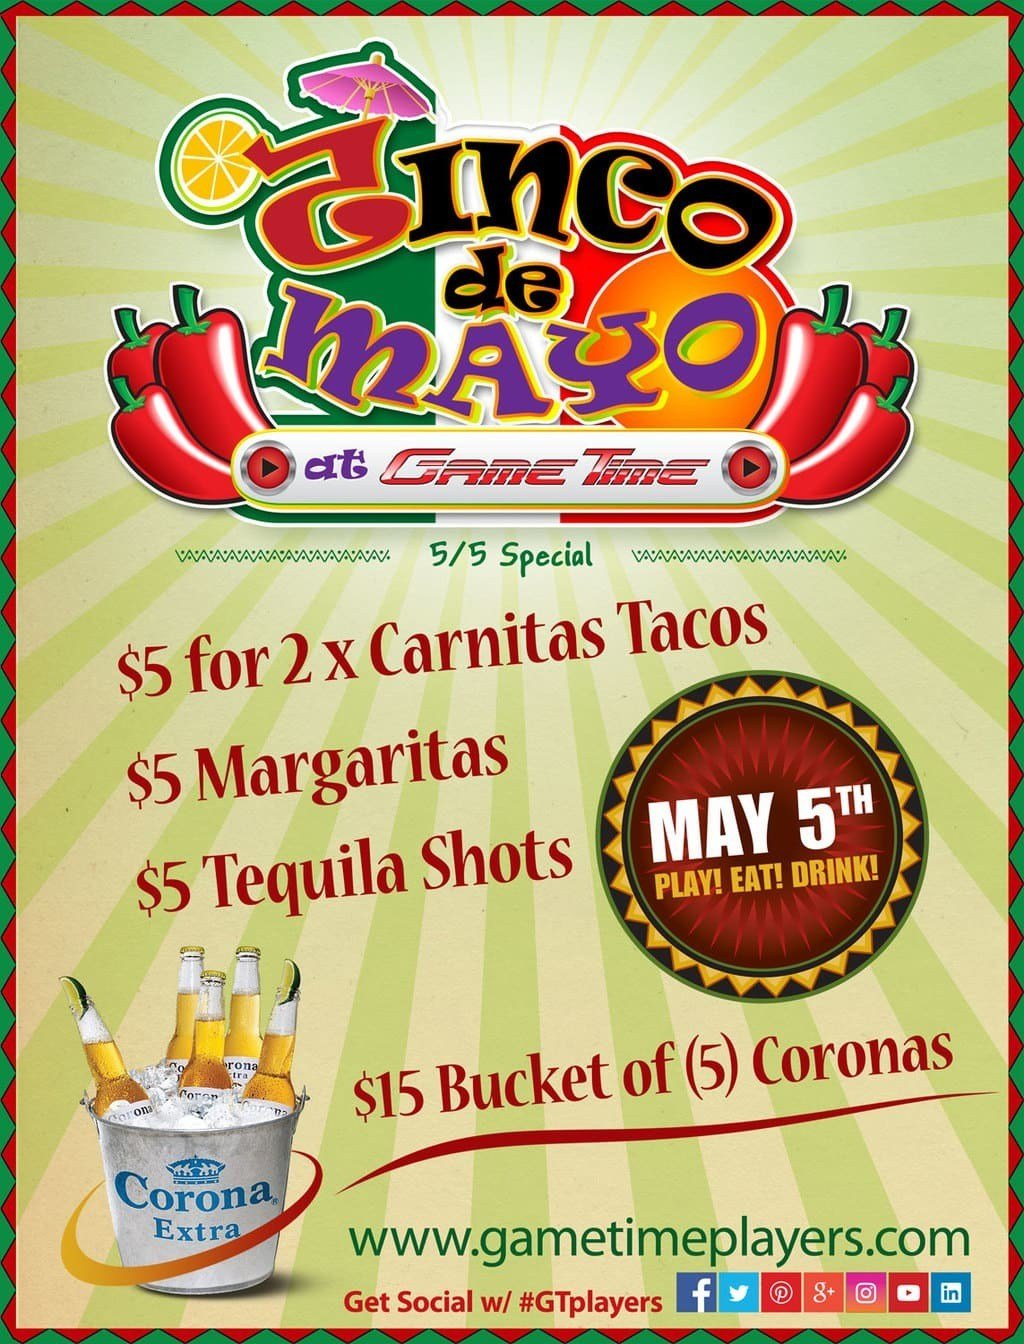 Celebrate-Cinco-de-Mayo-at-GameTime-Sports-Bar-Restaurant-Arcade-Miami-Tampa-Ybor-City-Fort-Myers-Tequila-Coronas-Margaritas-Carnitas-Tacos